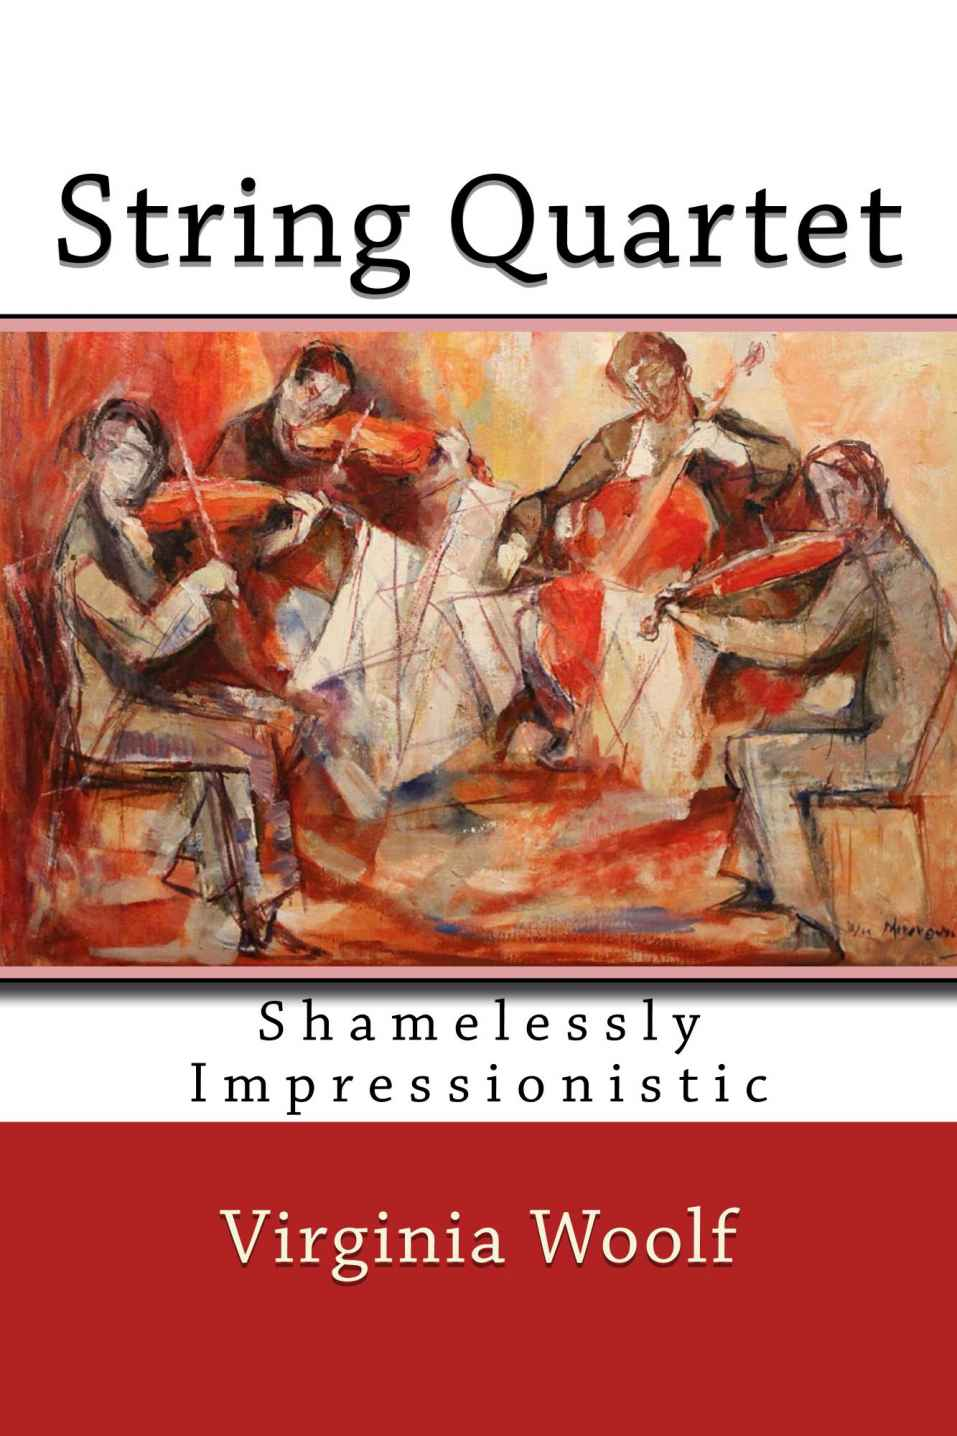 String Quartet: A Well Curated Collection of Virginia Woolf's Modernist Short Stories Just Published